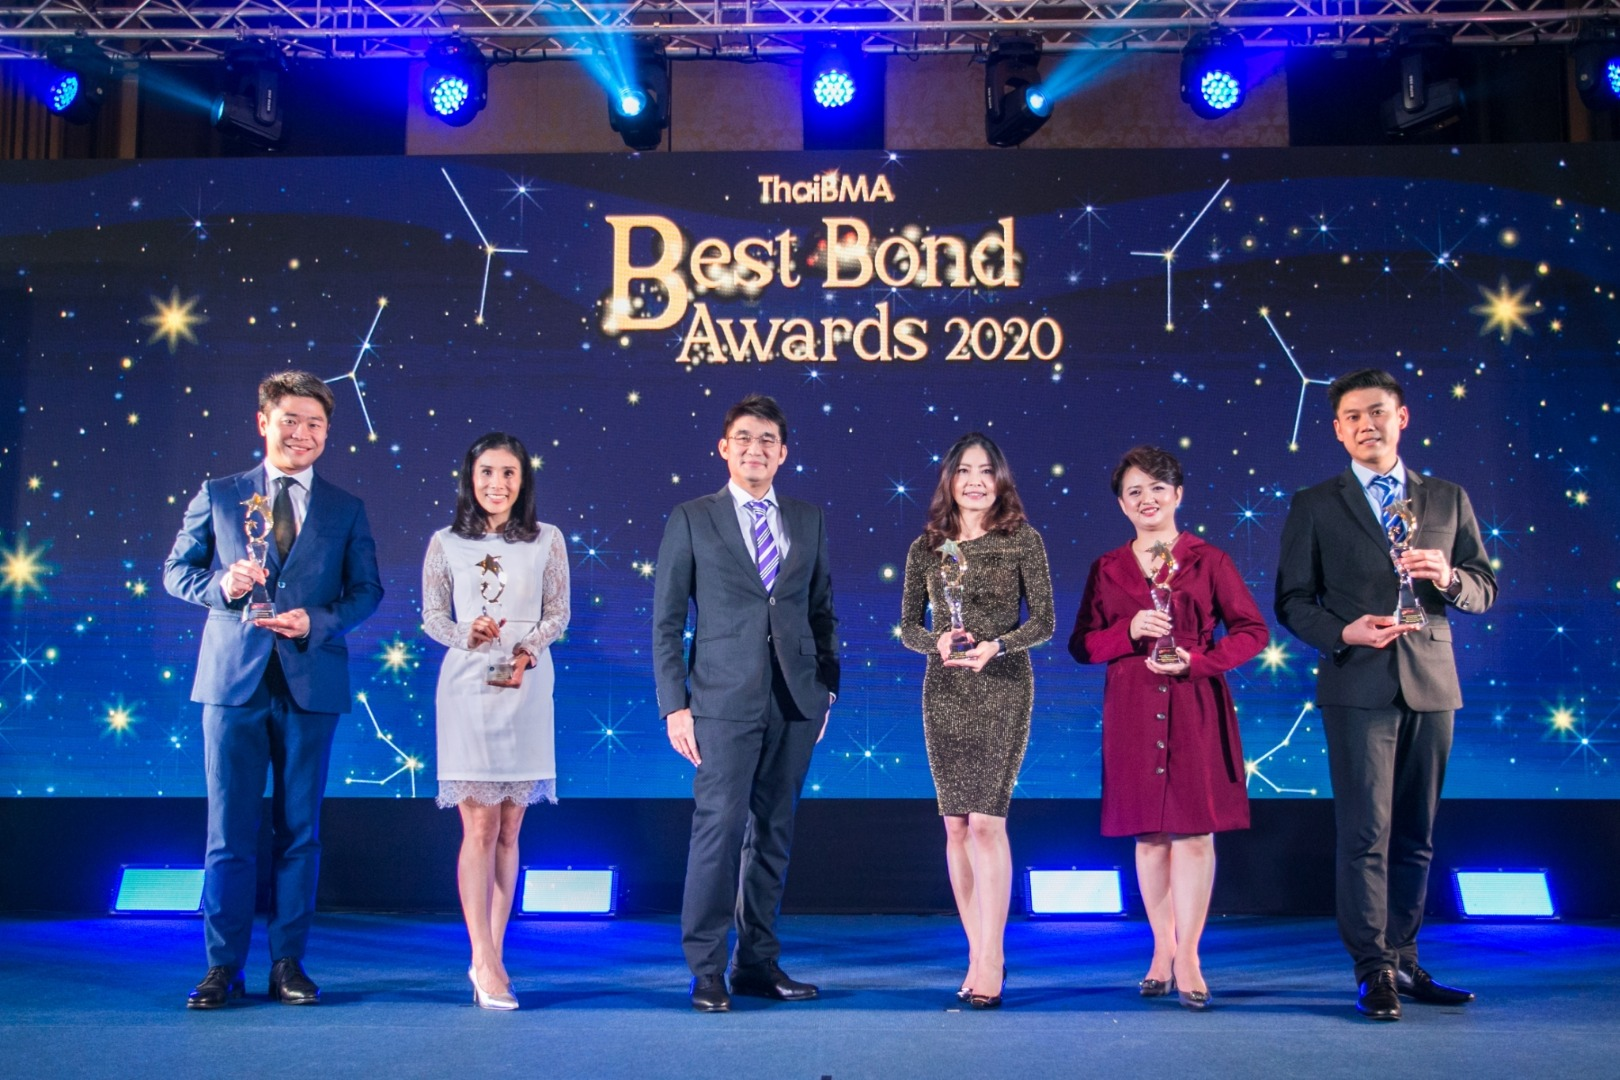 Thai BMA Best Bond Awards 2020